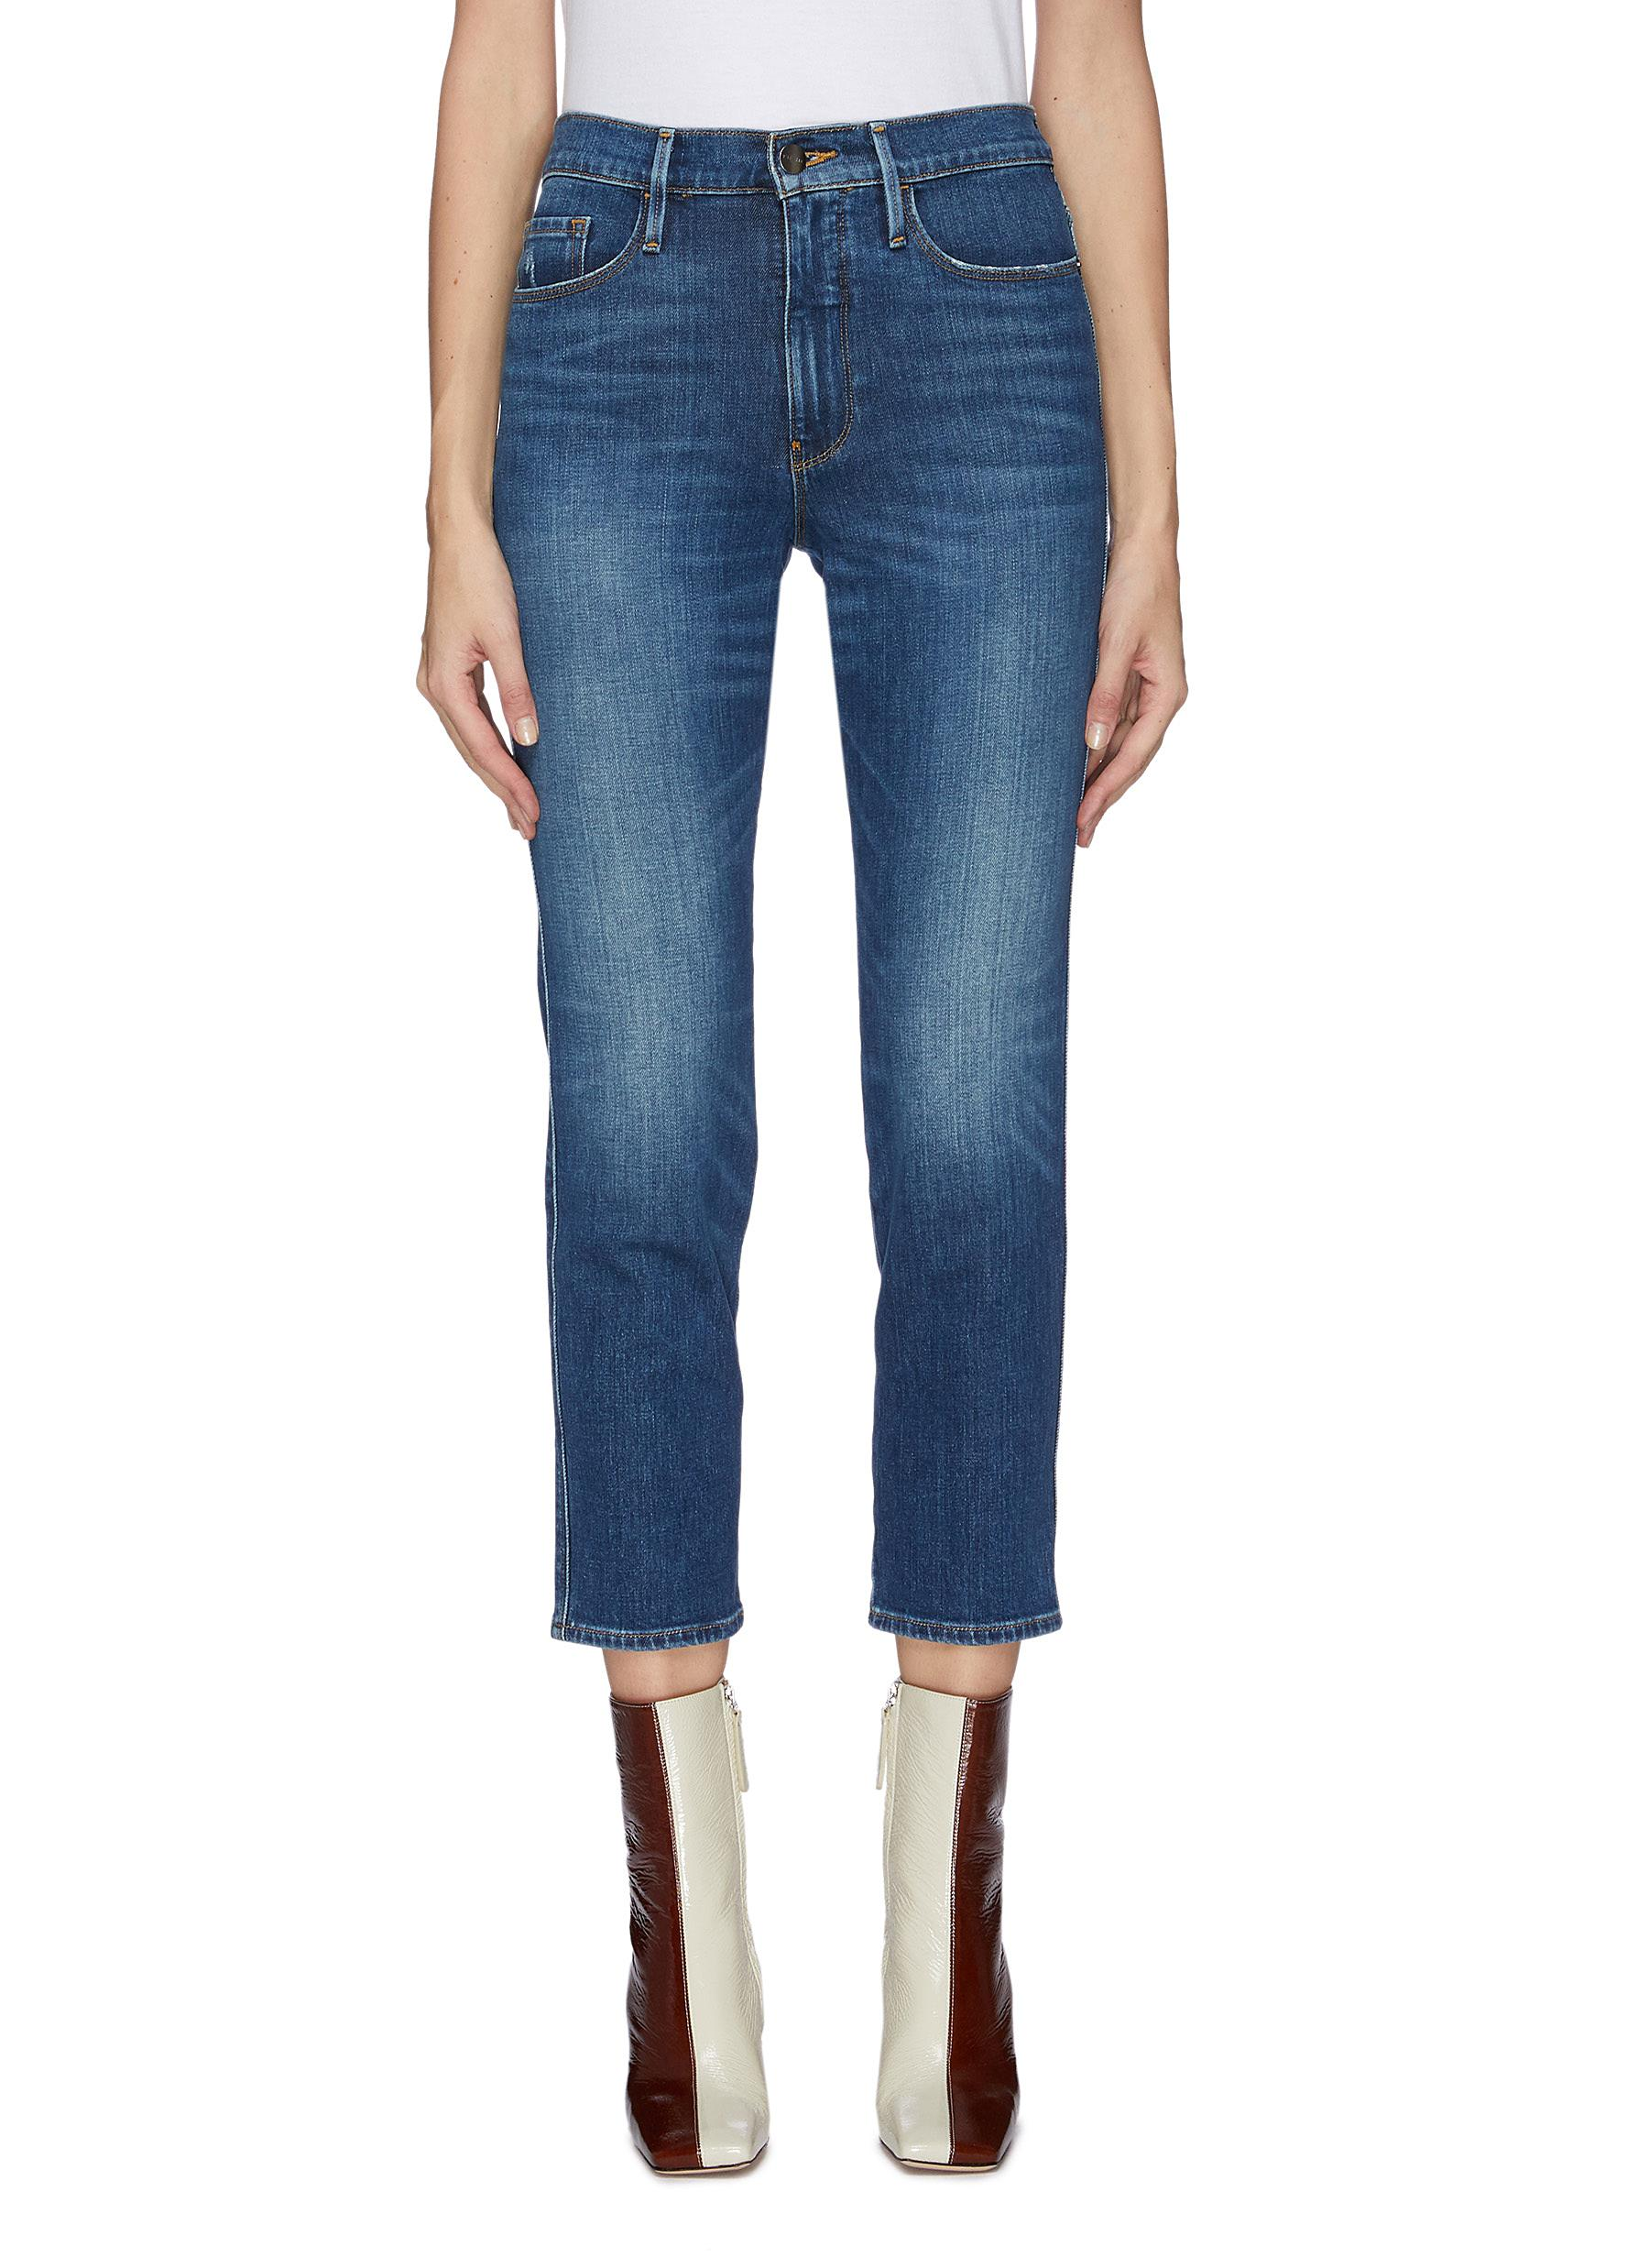 Buy Frame Denim Jeans 'Le pixie sylvie' slim jeans